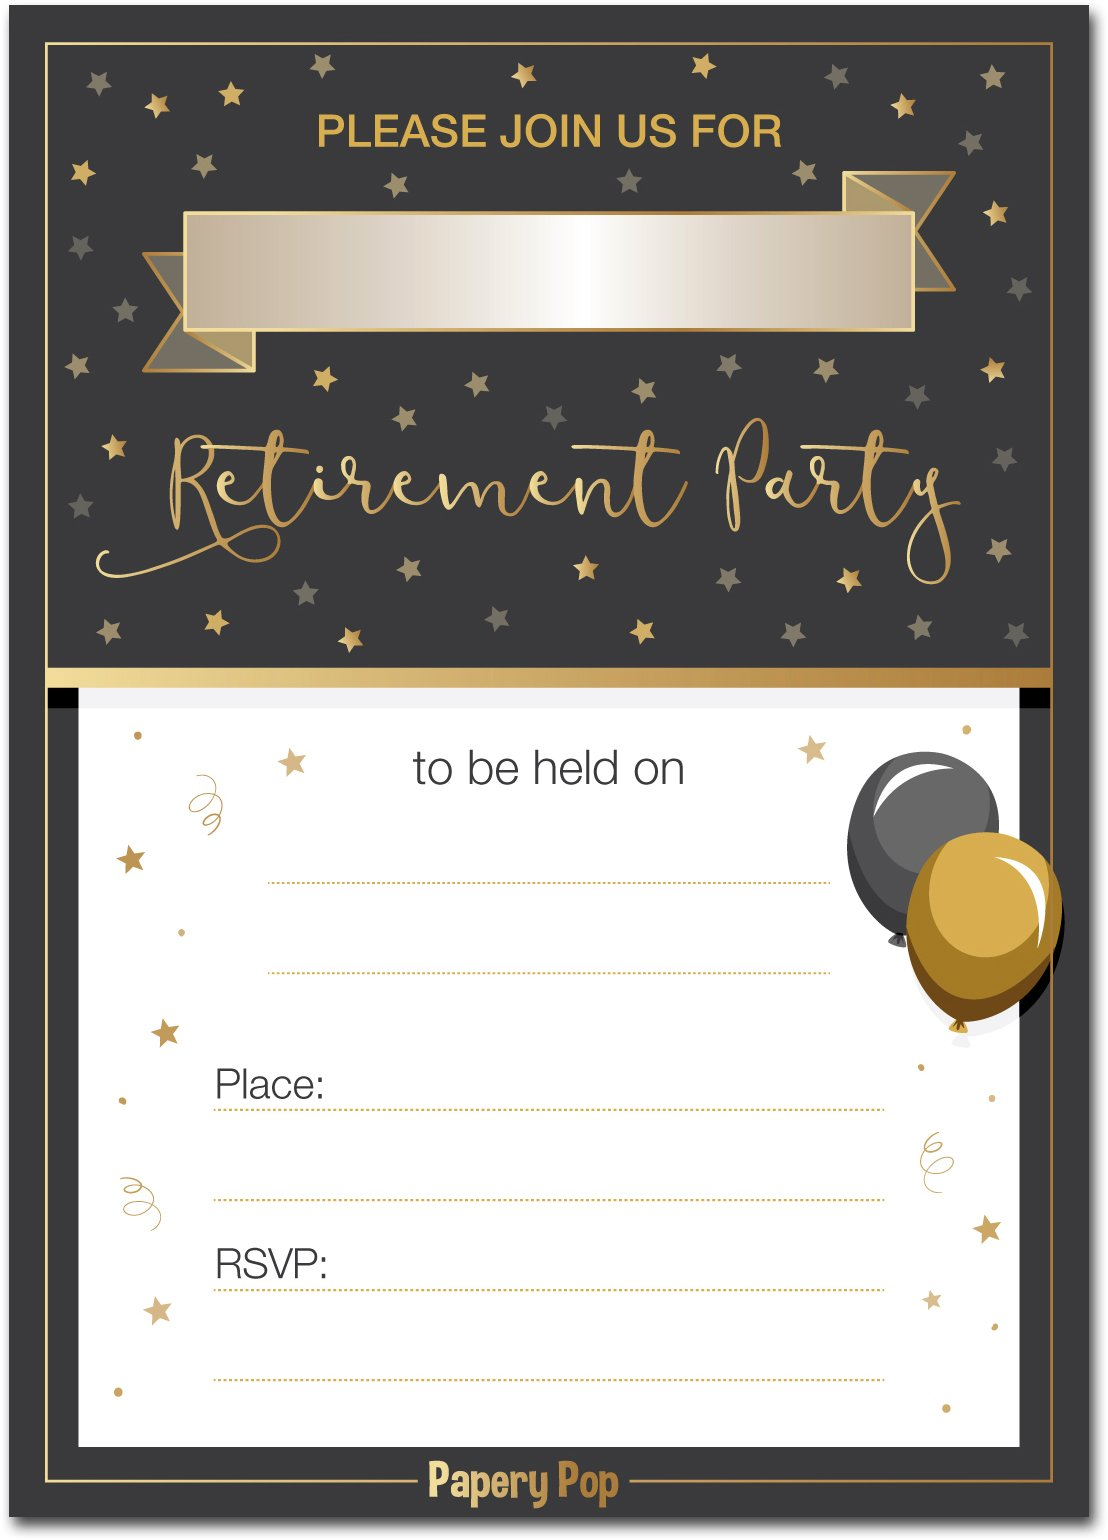 30 Retirement Party Invitations with Envelopes for Men Or Women (30 Pack) - Retired Invites Cards by Papery Pop